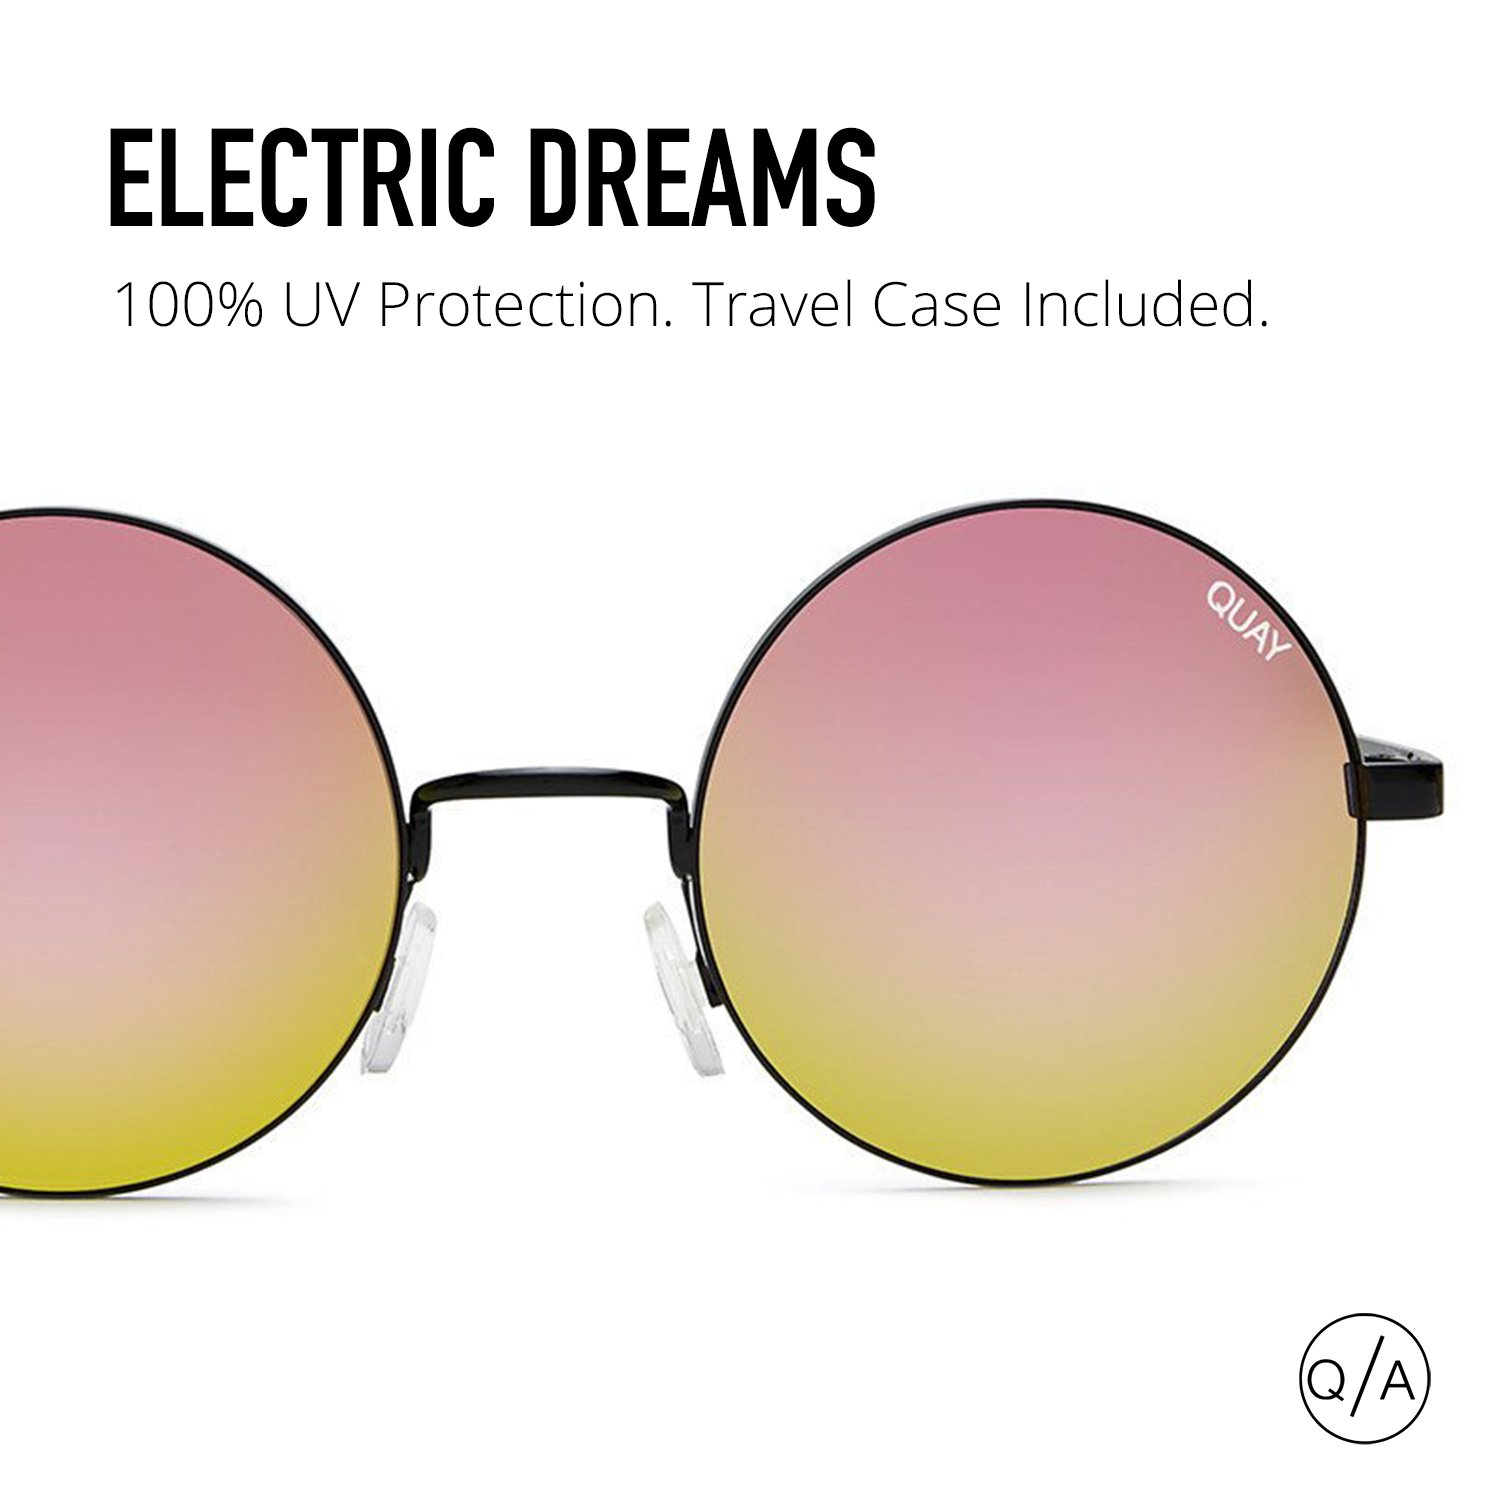 12c7f6d0e1eb Amazon.com: Quay Women's Electric Dreams Sunglasses, Black/Mirror, One  Size: Clothing